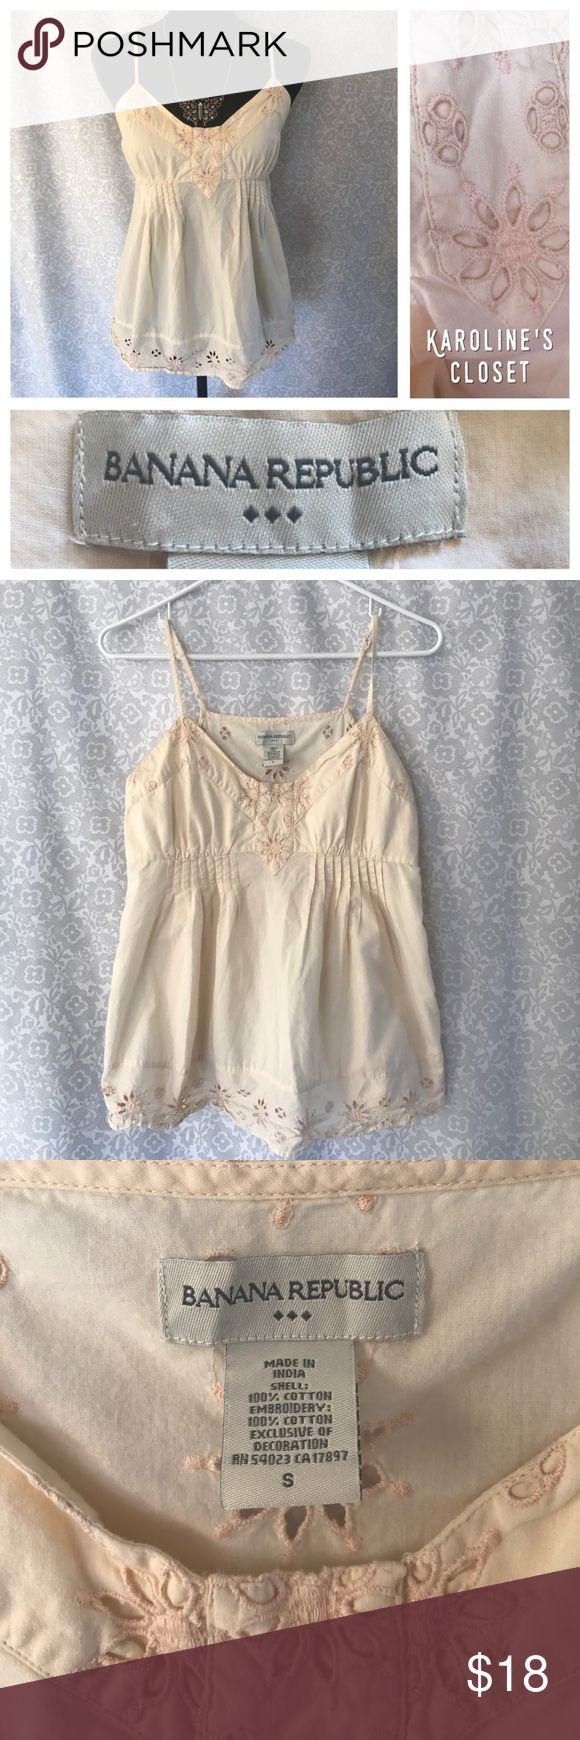 15% OFF BUNDLES! Banana Republic, Size small, light peach colored tank with adjustable straps, side zipper, and very pretty Floral embroidery!! Banana Republic Tops Tank Tops